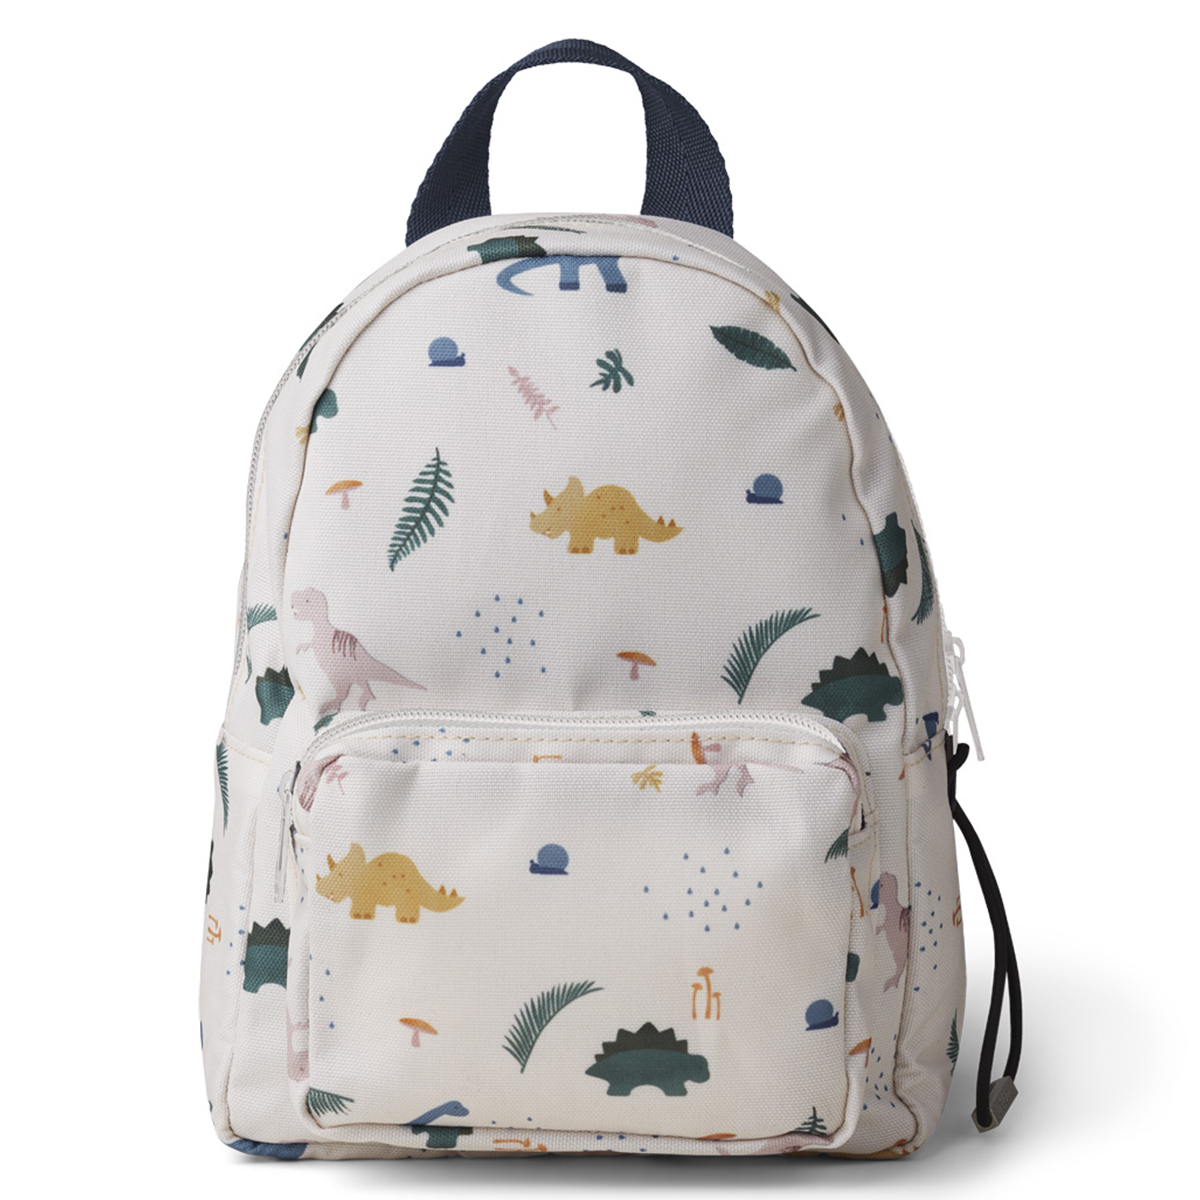 Bagagerie enfant Mini Sac à Dos Saxo - Dino Mix Mini Sac à Dos Saxo - Dino Mix